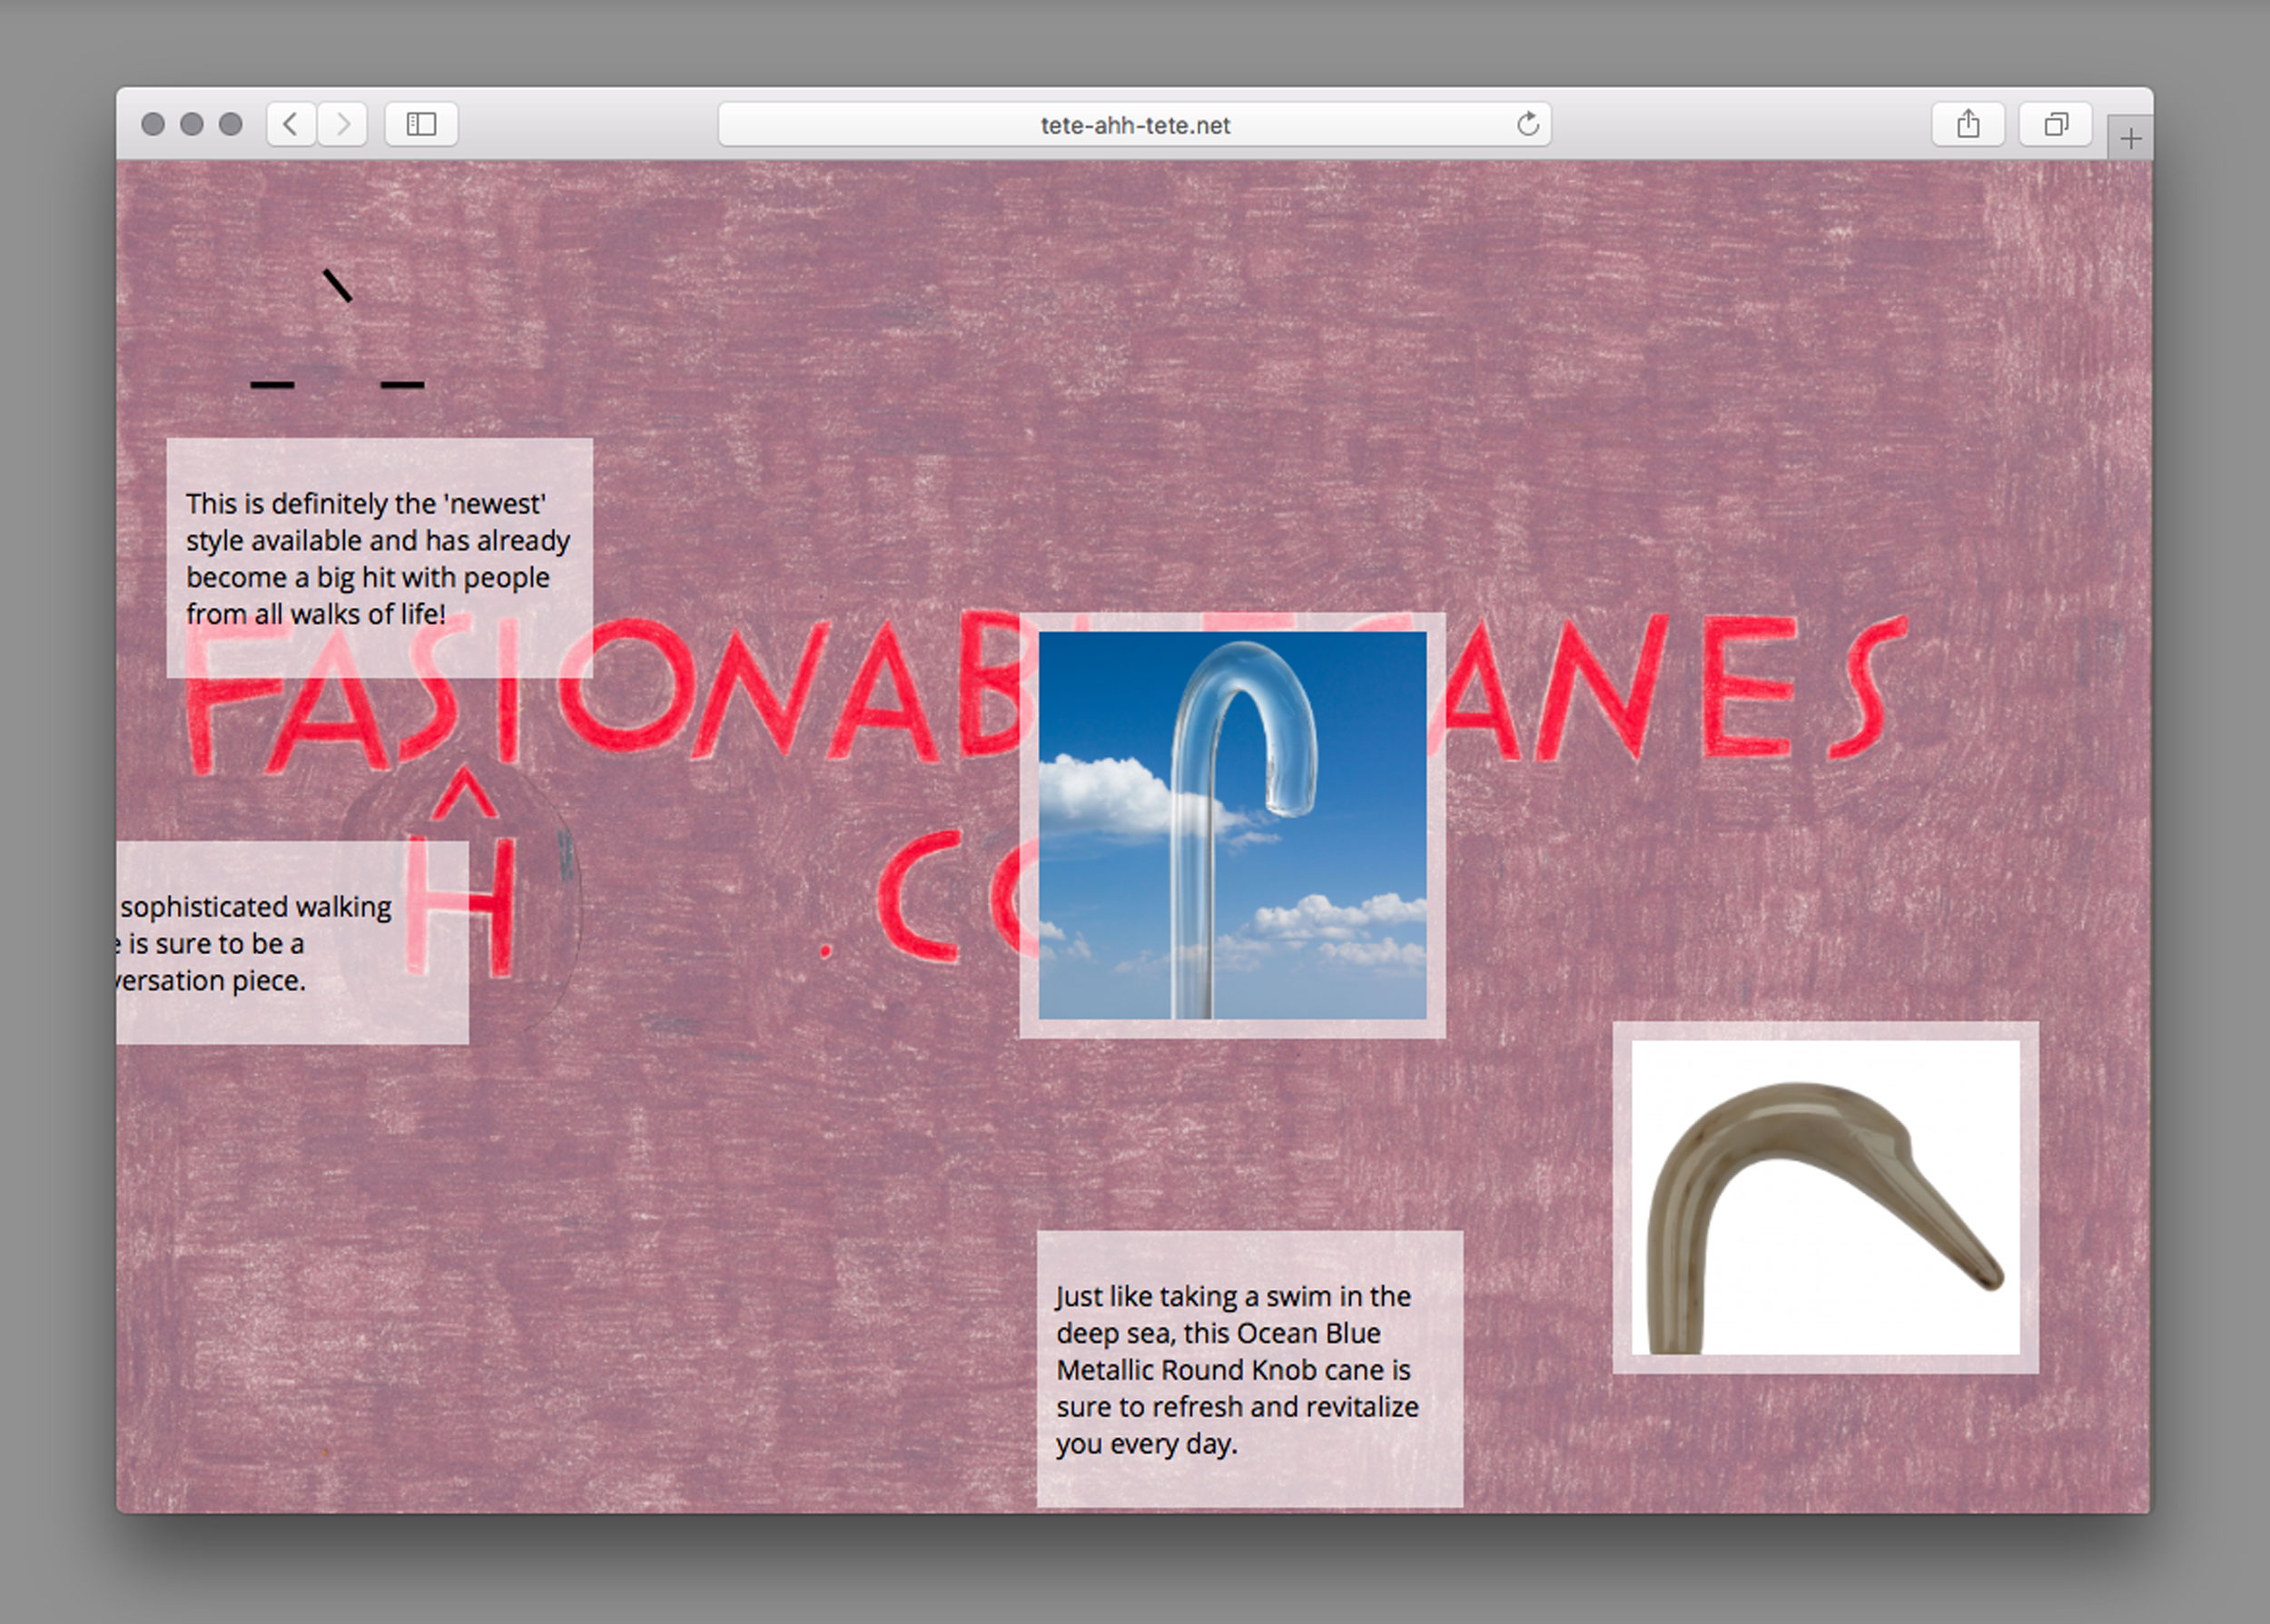 A screenshot of my project on tete-ahh-tete.net about the website fashionablecanes.com.